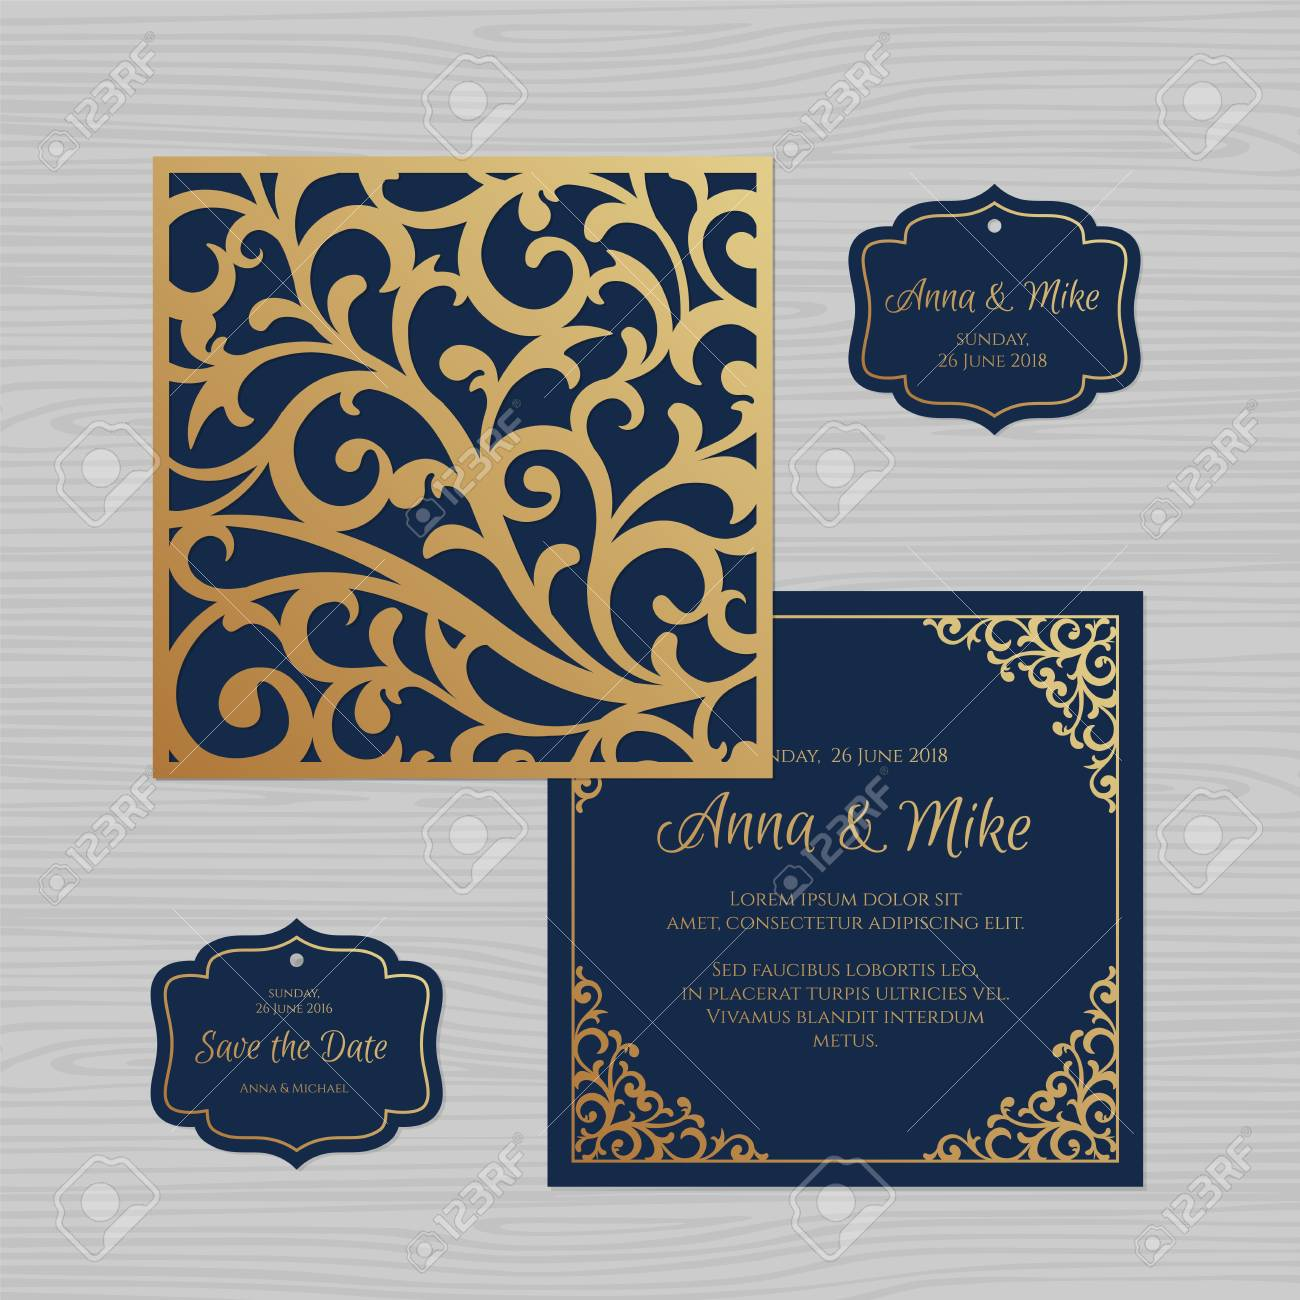 wedding invitation or greeting card with vintage ornament paper